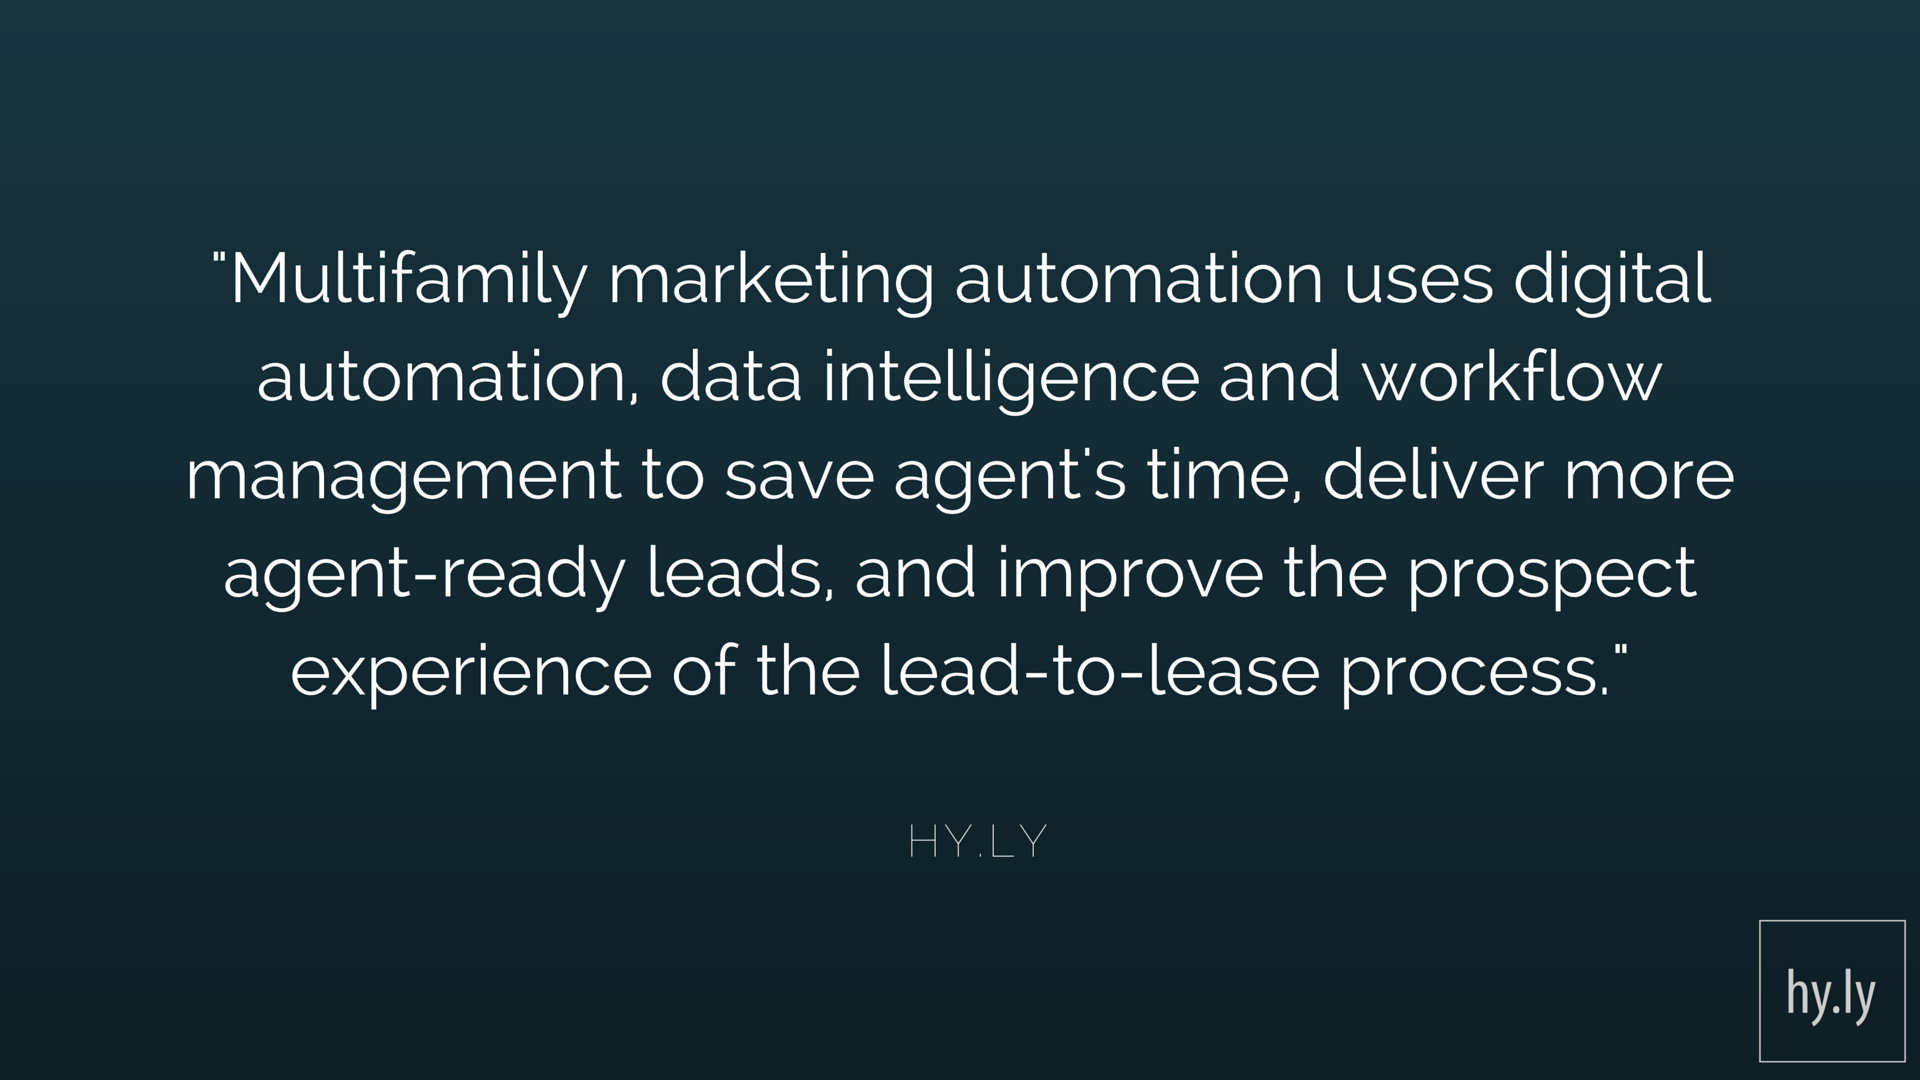 Hyly Marketing Automation Definition